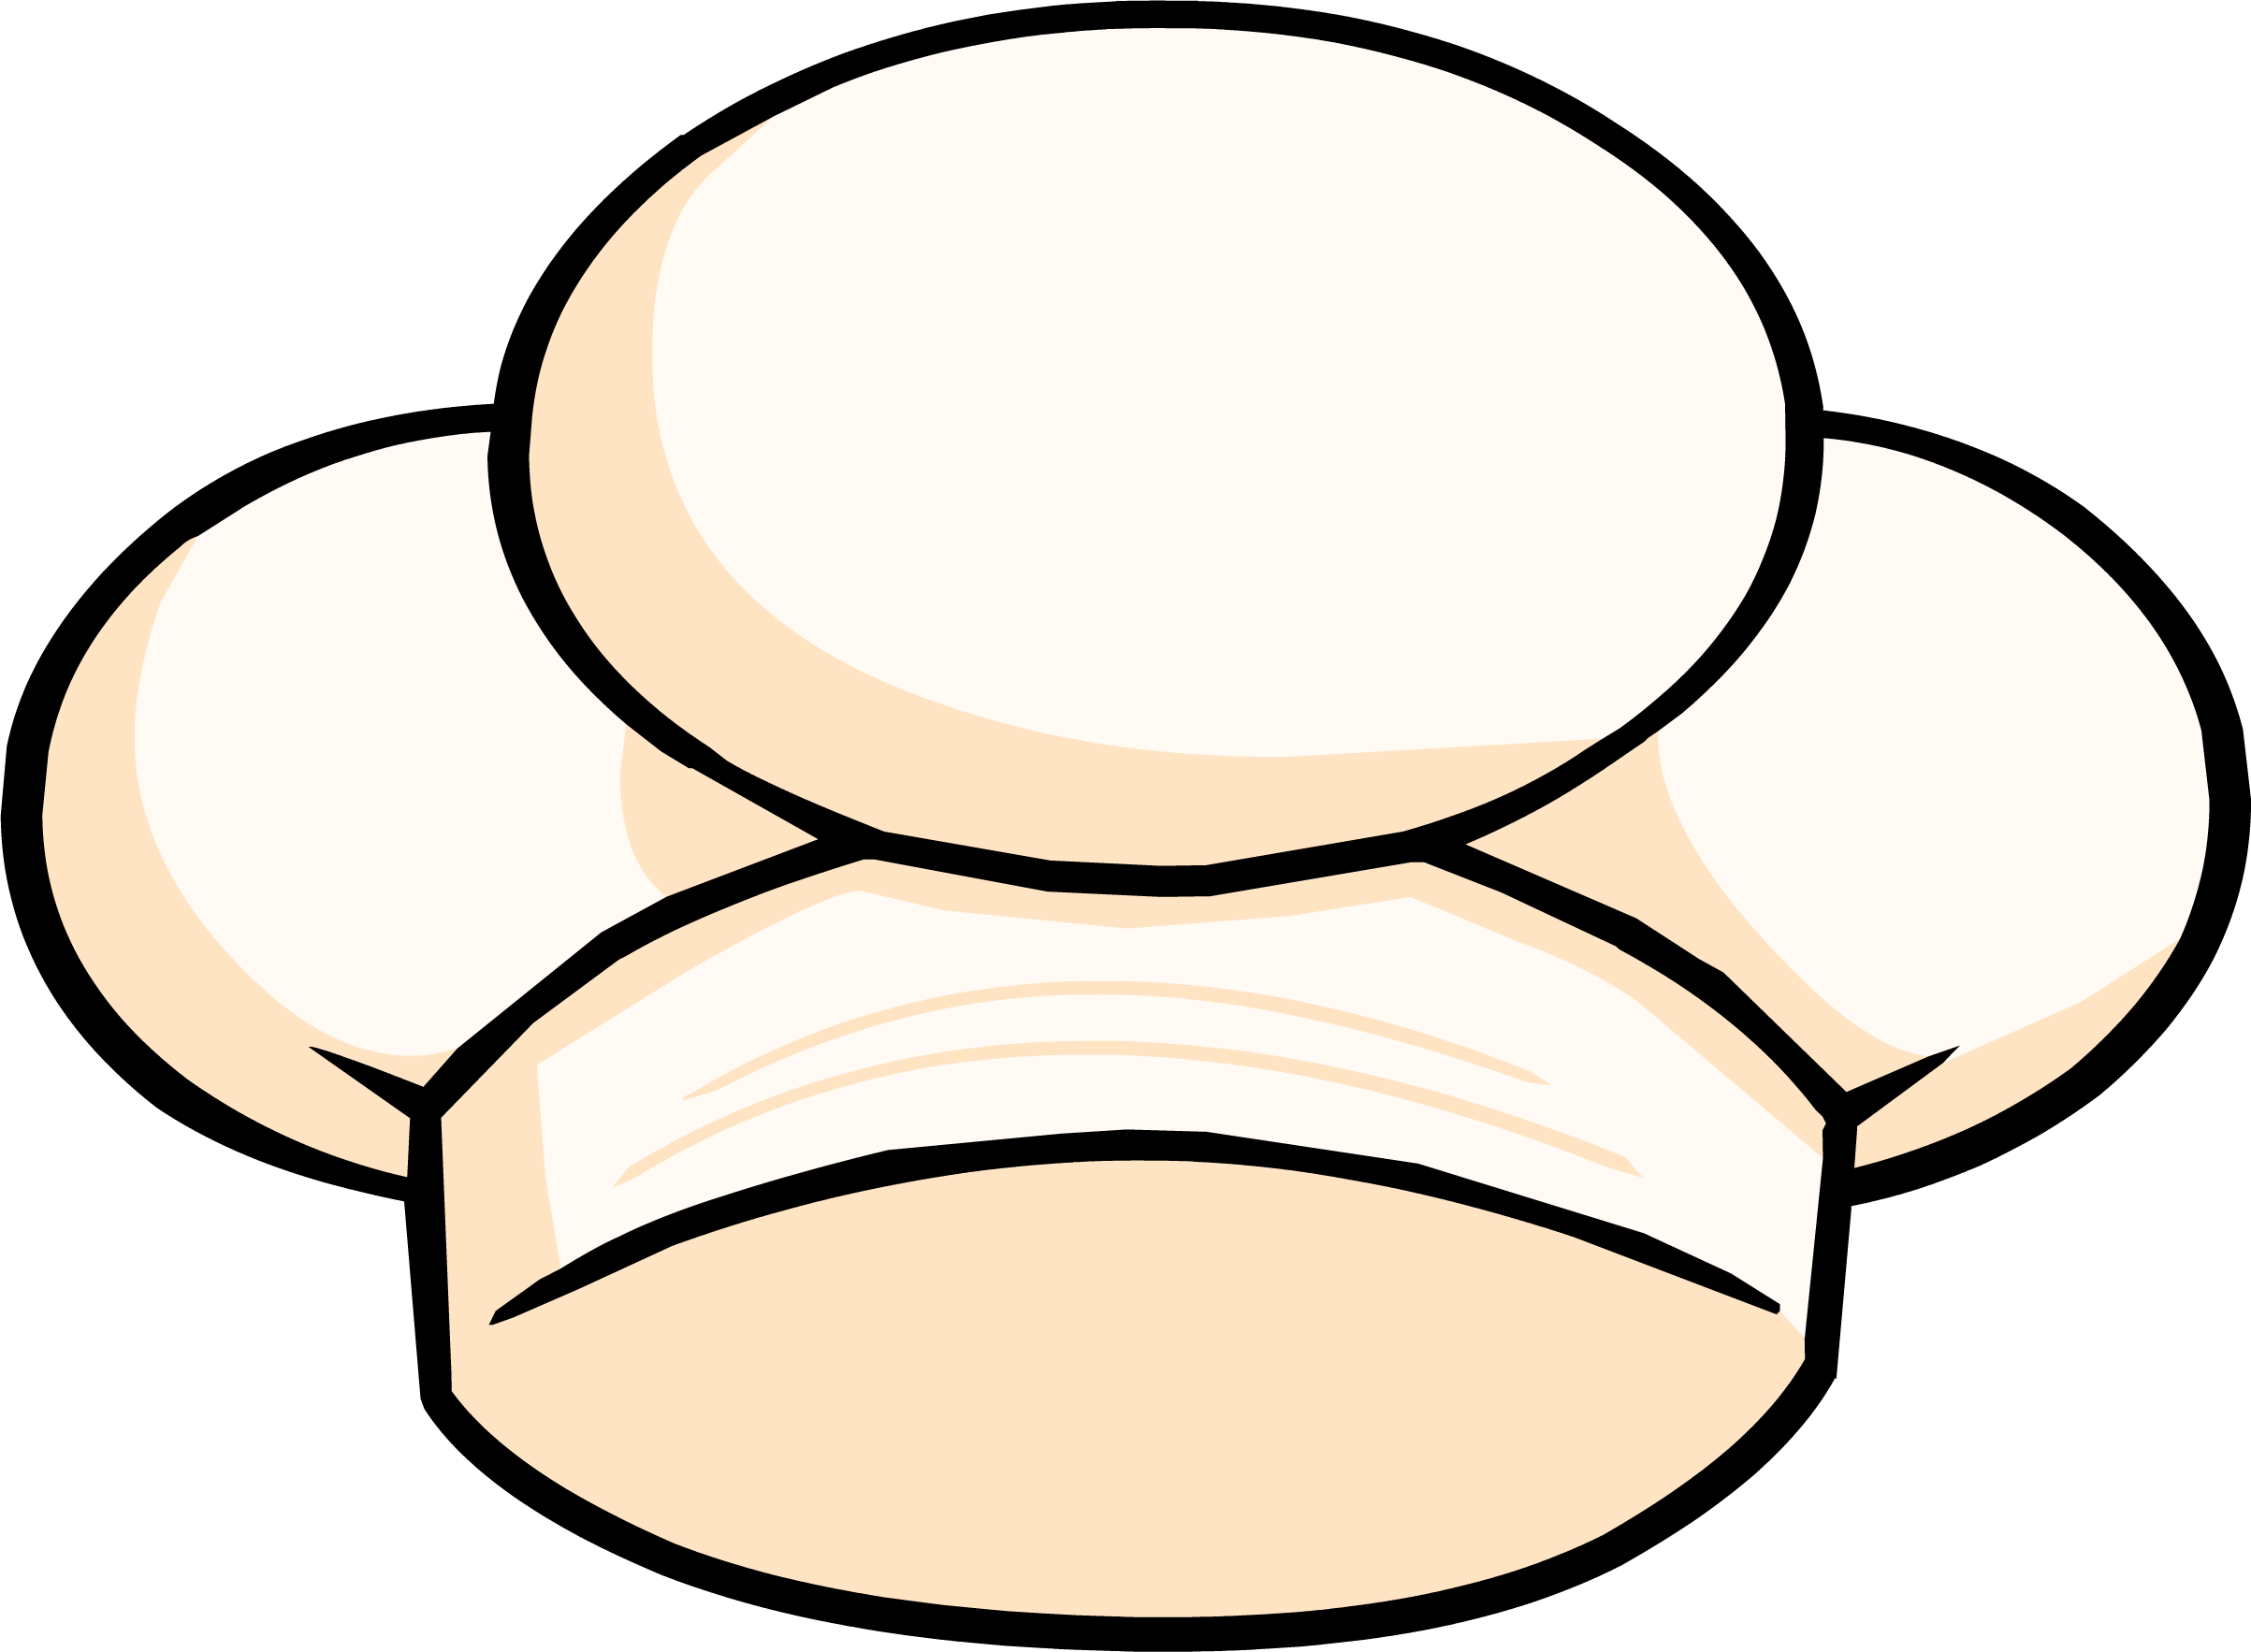 Chef hats png. Image s hat club